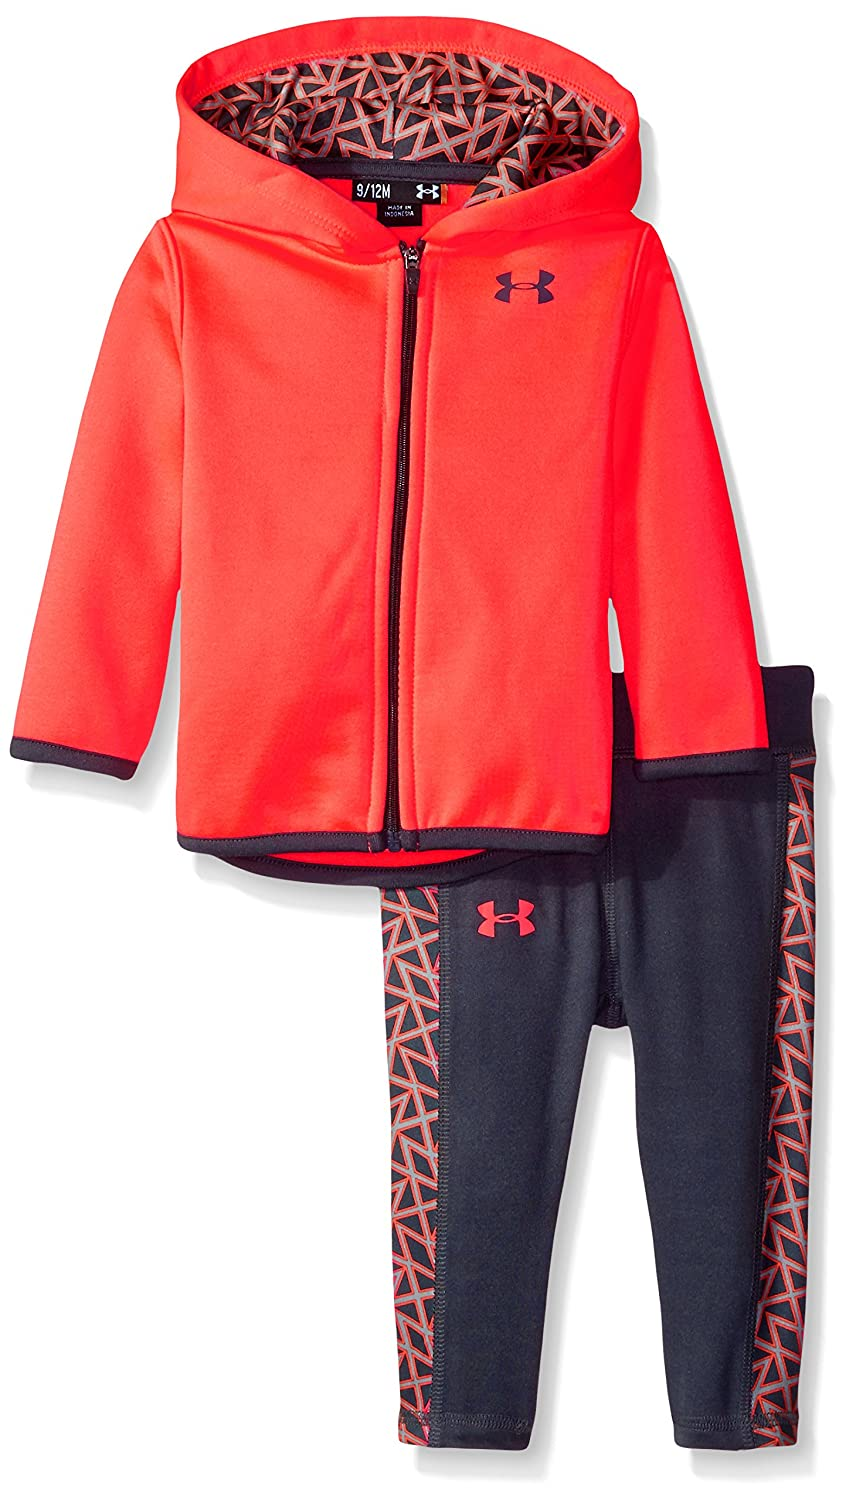 Under Armour Girls' Active Hoodie and Legging Set After Burn 5 2527B22001